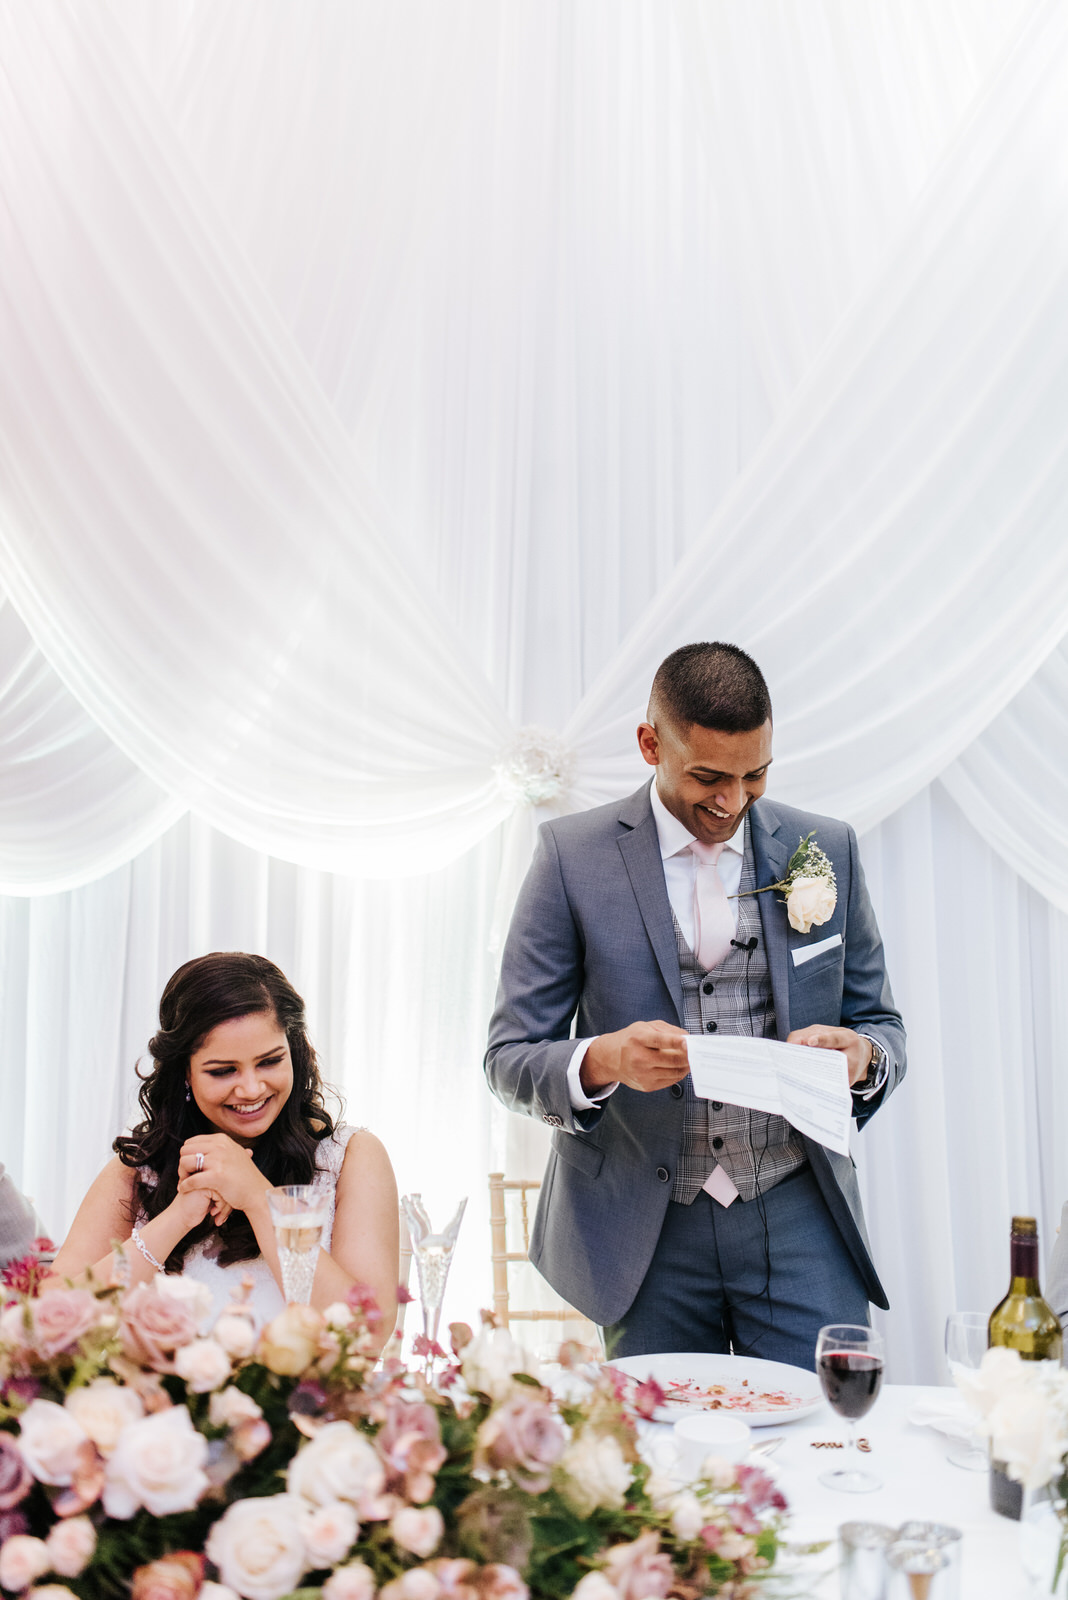 Groom smiling and laughing with his bride as he delivers his spe